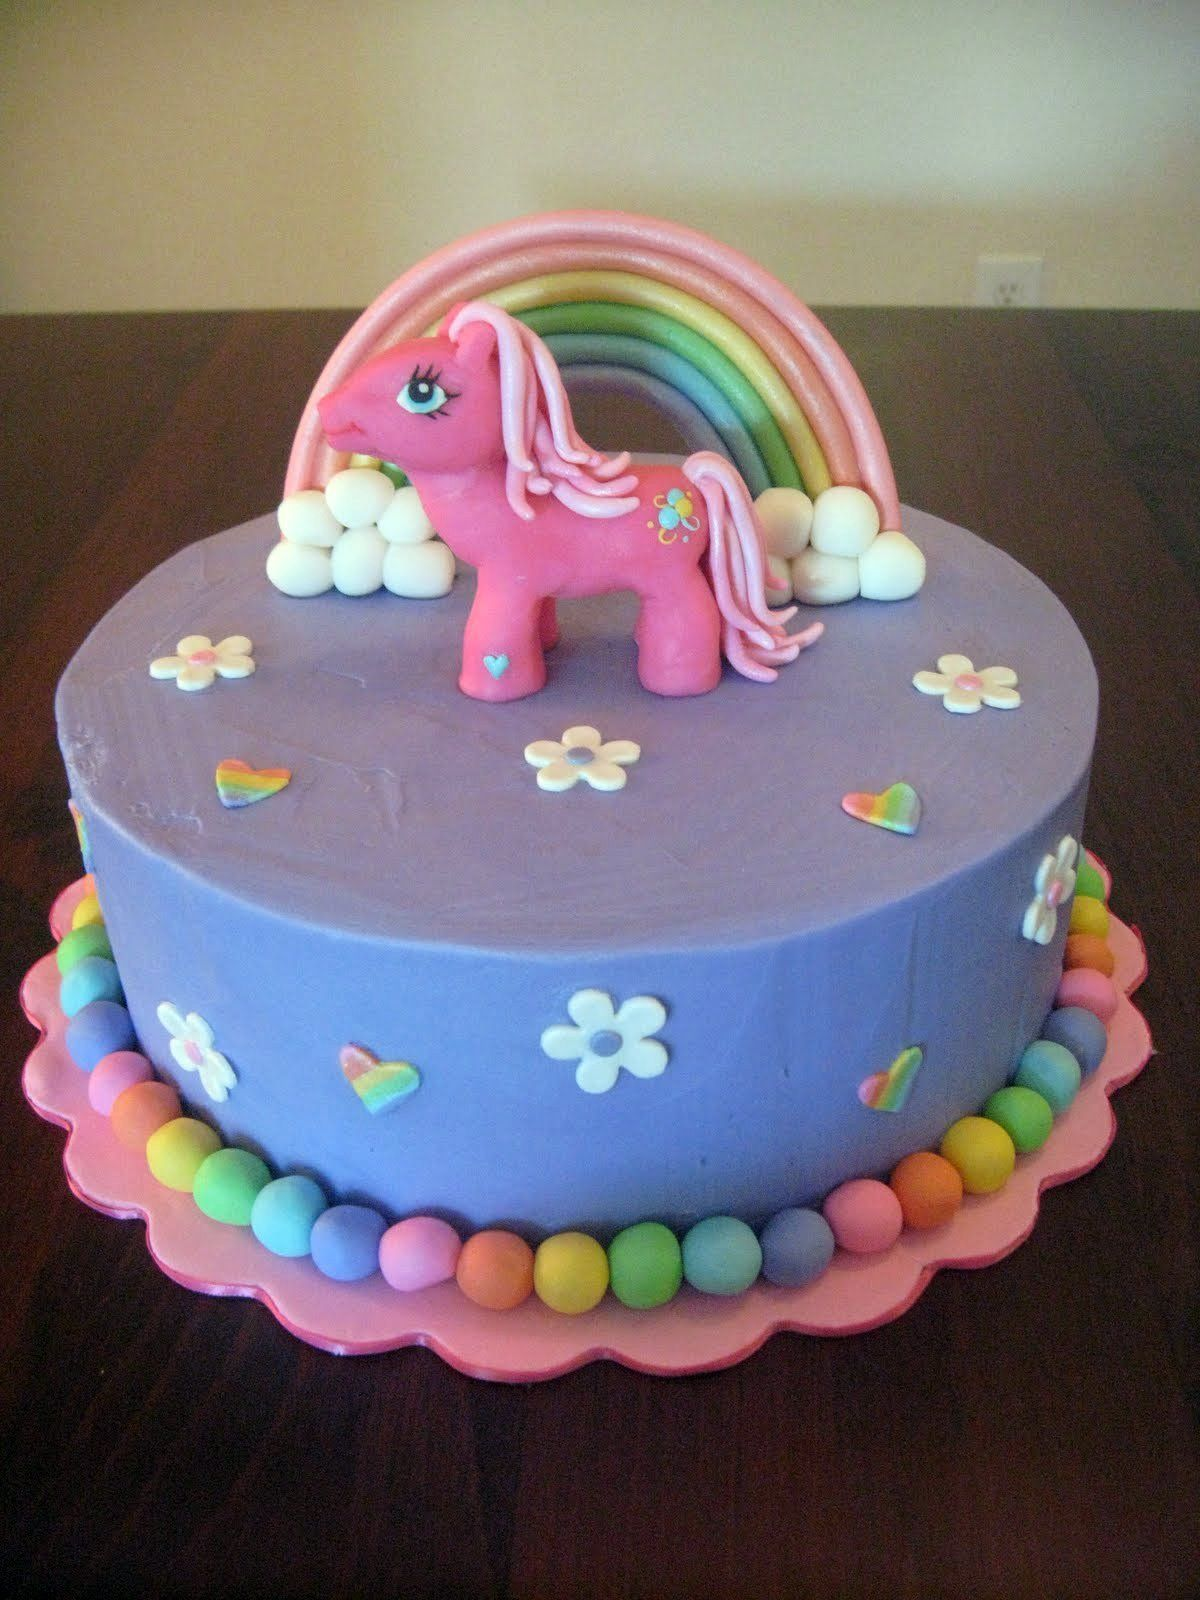 Google themes my little pony - Rosebud Cake Inspiration To Theme 1st Birthday From B S Party Dress Like The Idea Of My Little Pony